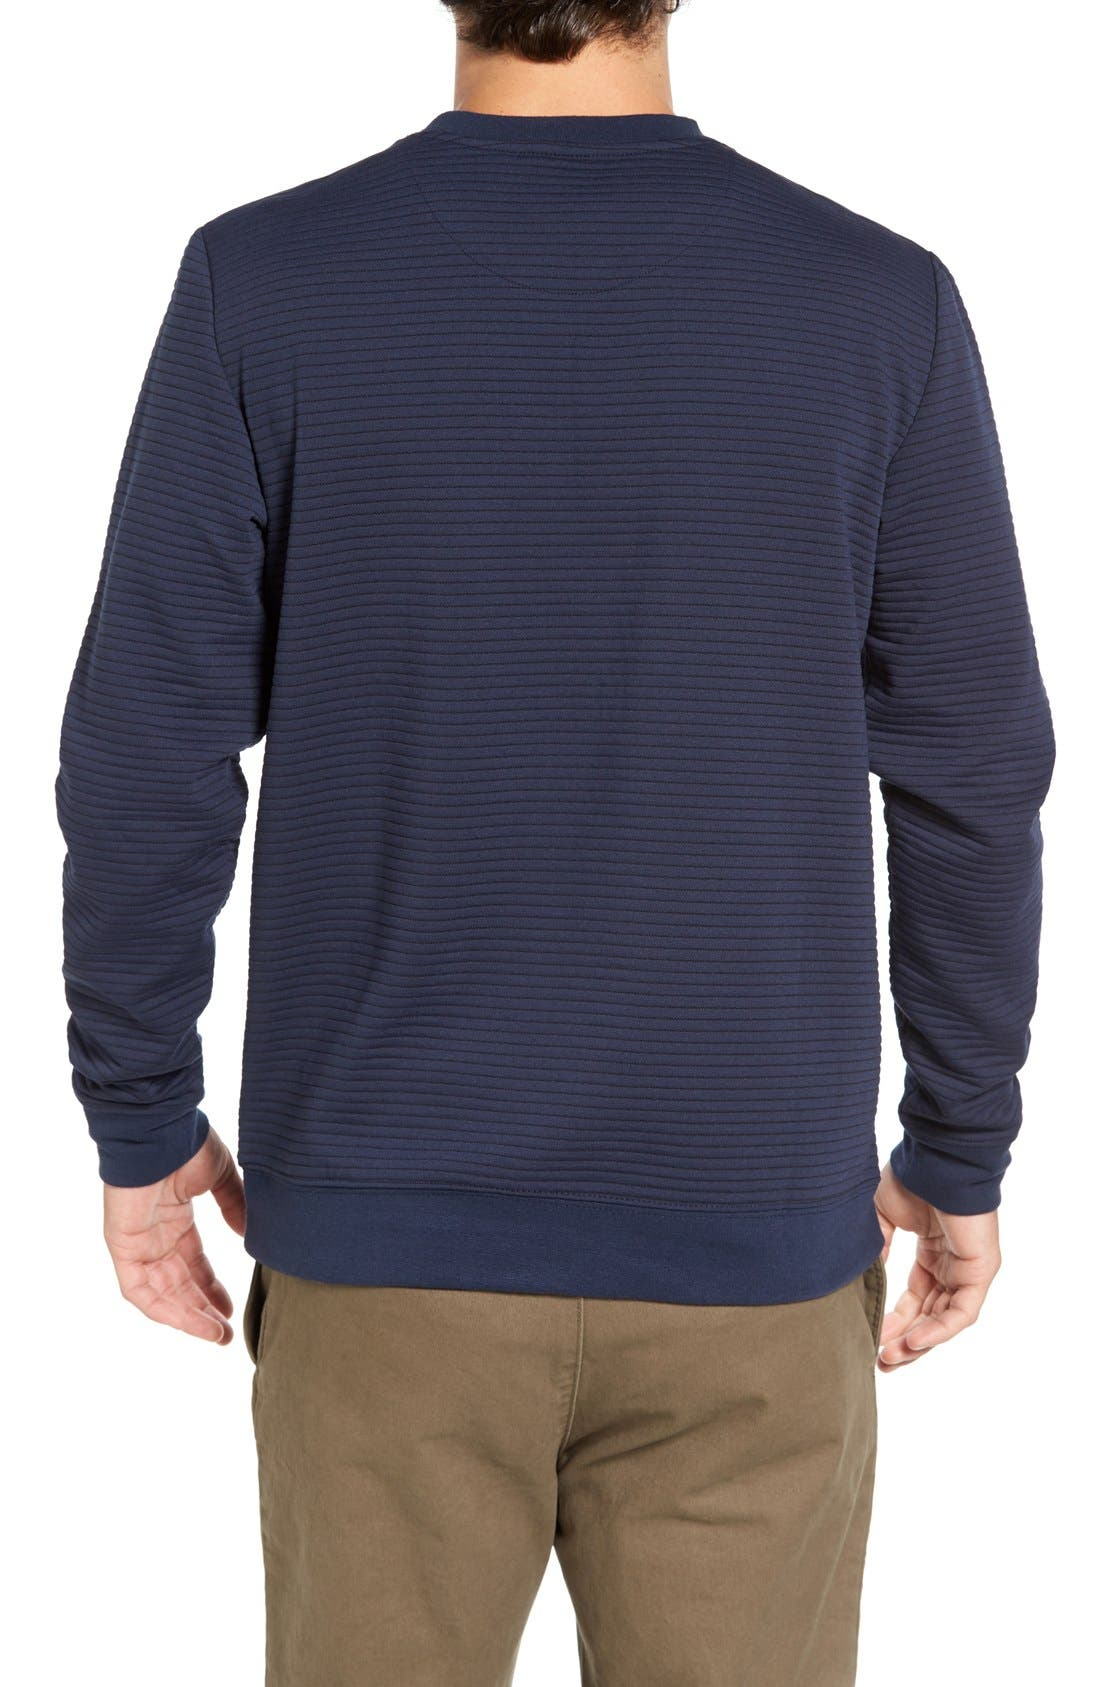 Stripe Pullover,                             Alternate thumbnail 2, color,                             Dark Blue Royal